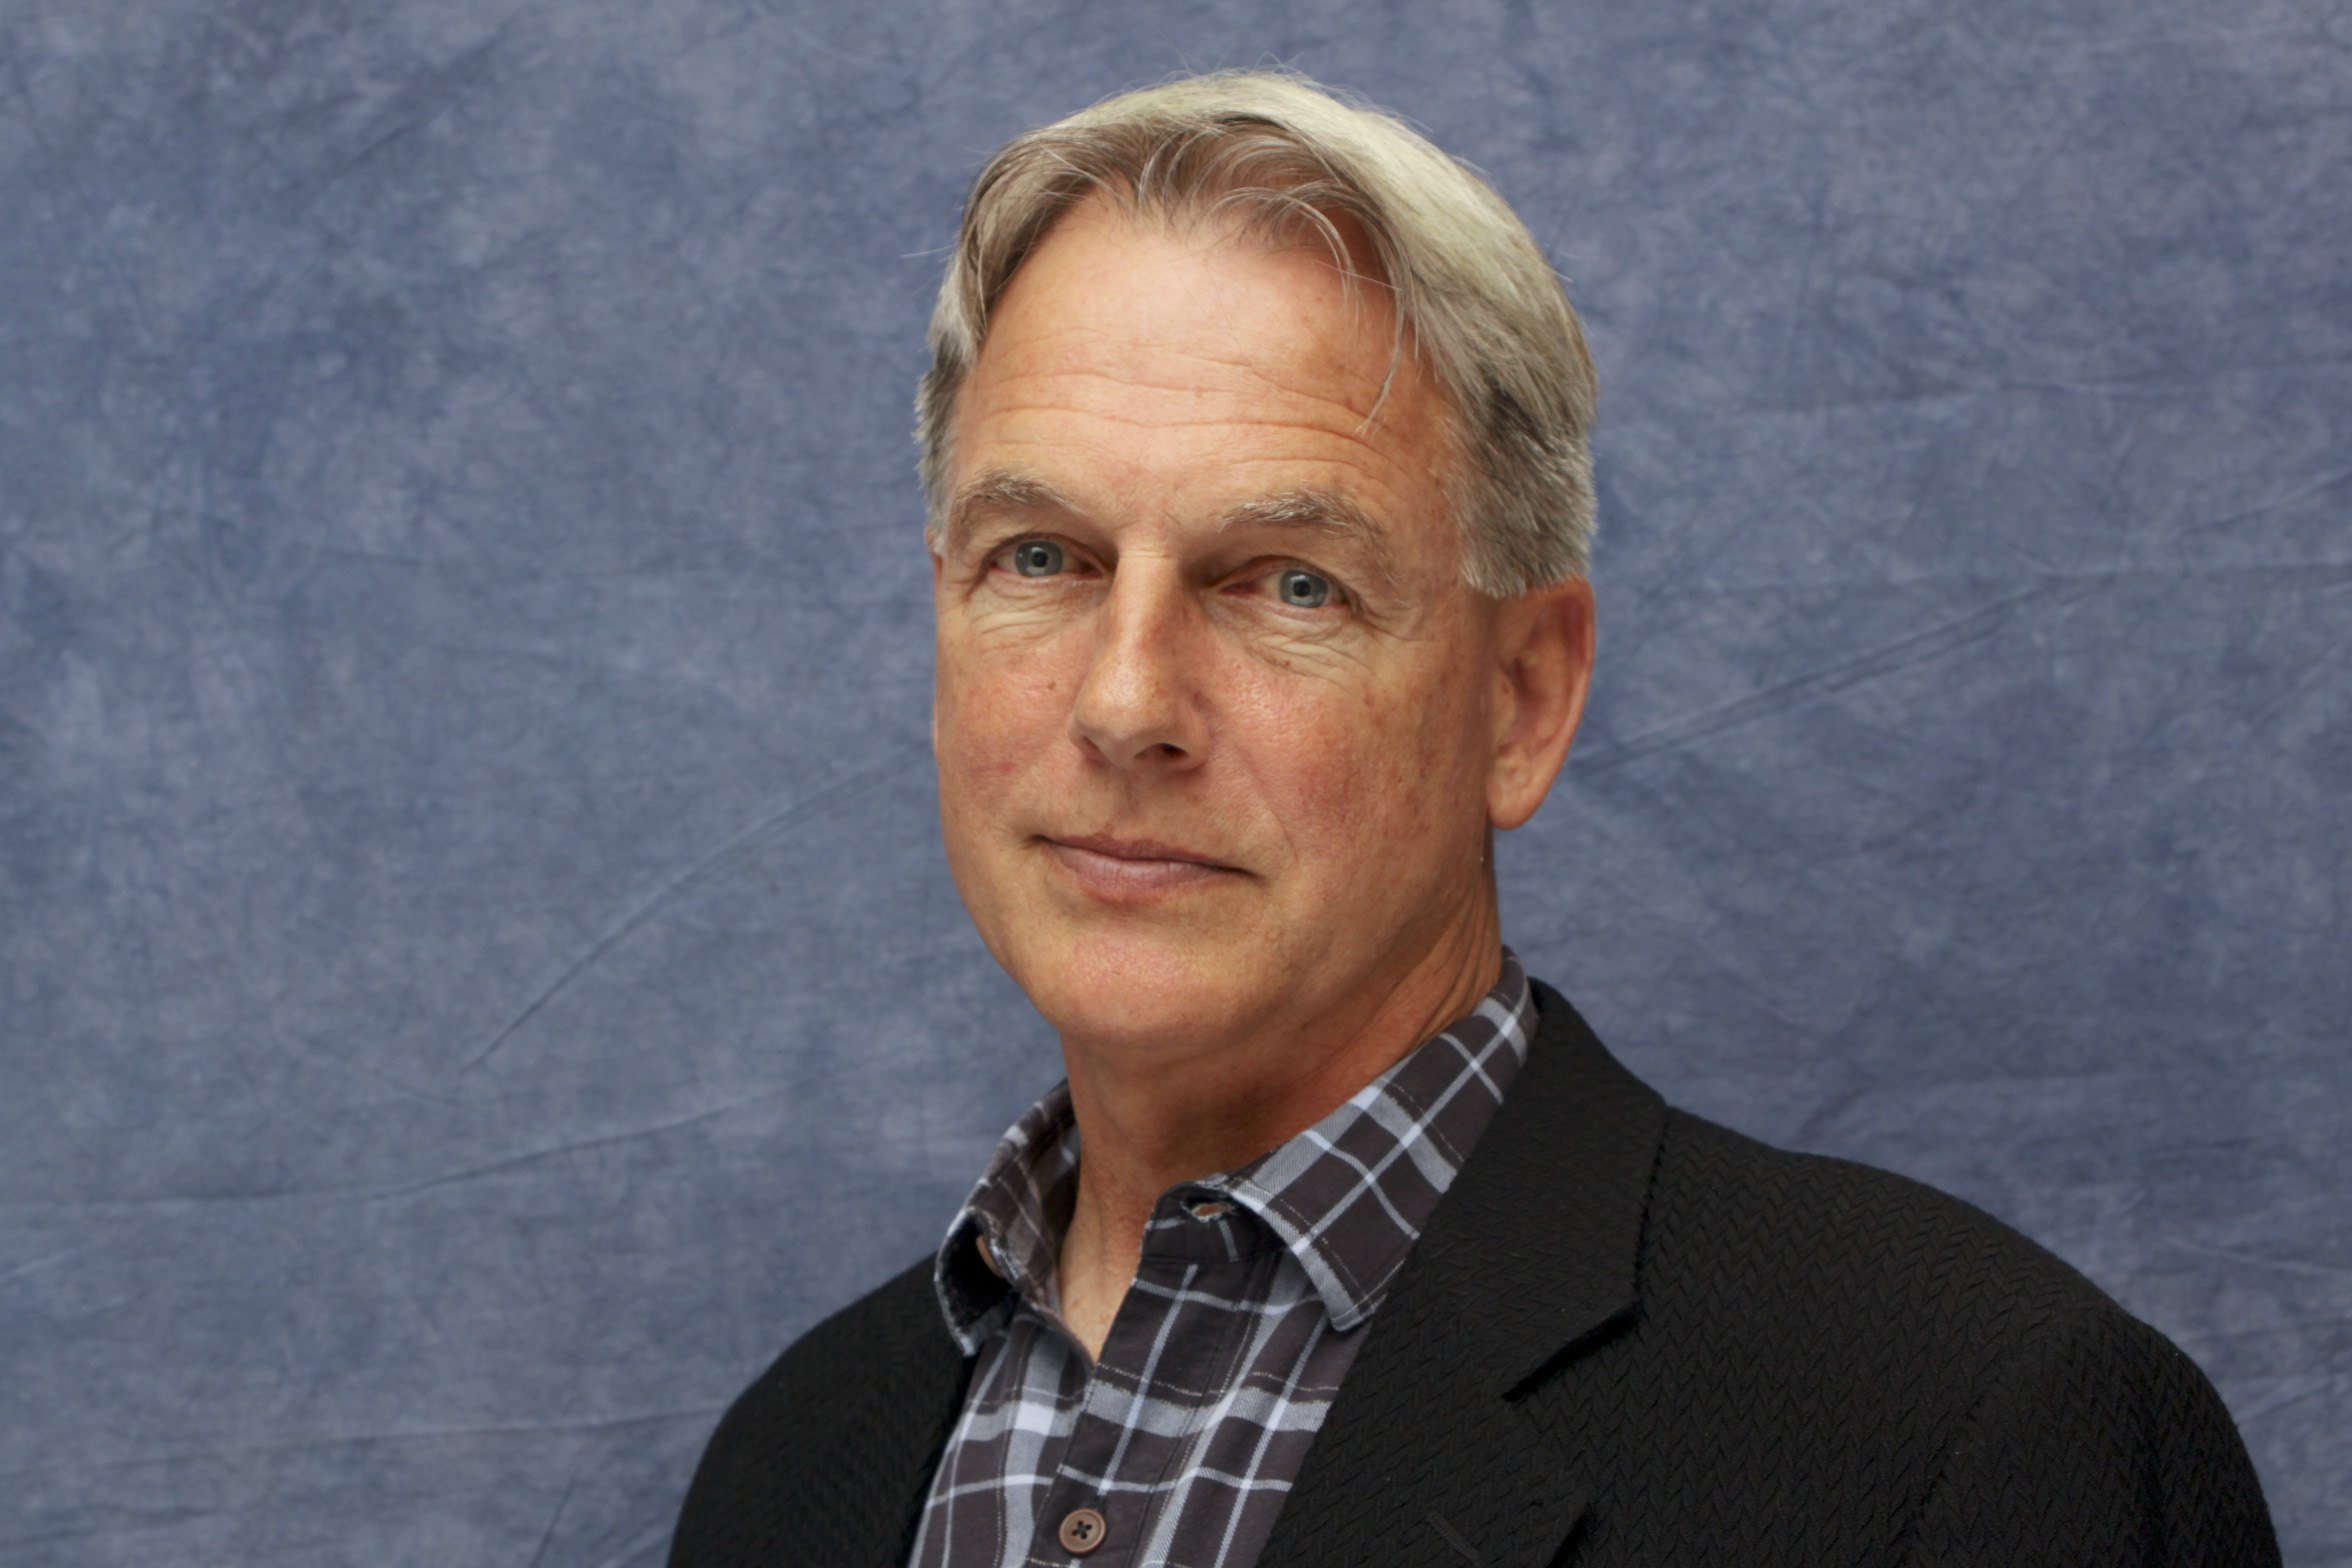 Mark Harmon im Four Seasons Hotel in Beverly Hills, Kalifornien, 22. April, 2009 | Quelle: Getty Images